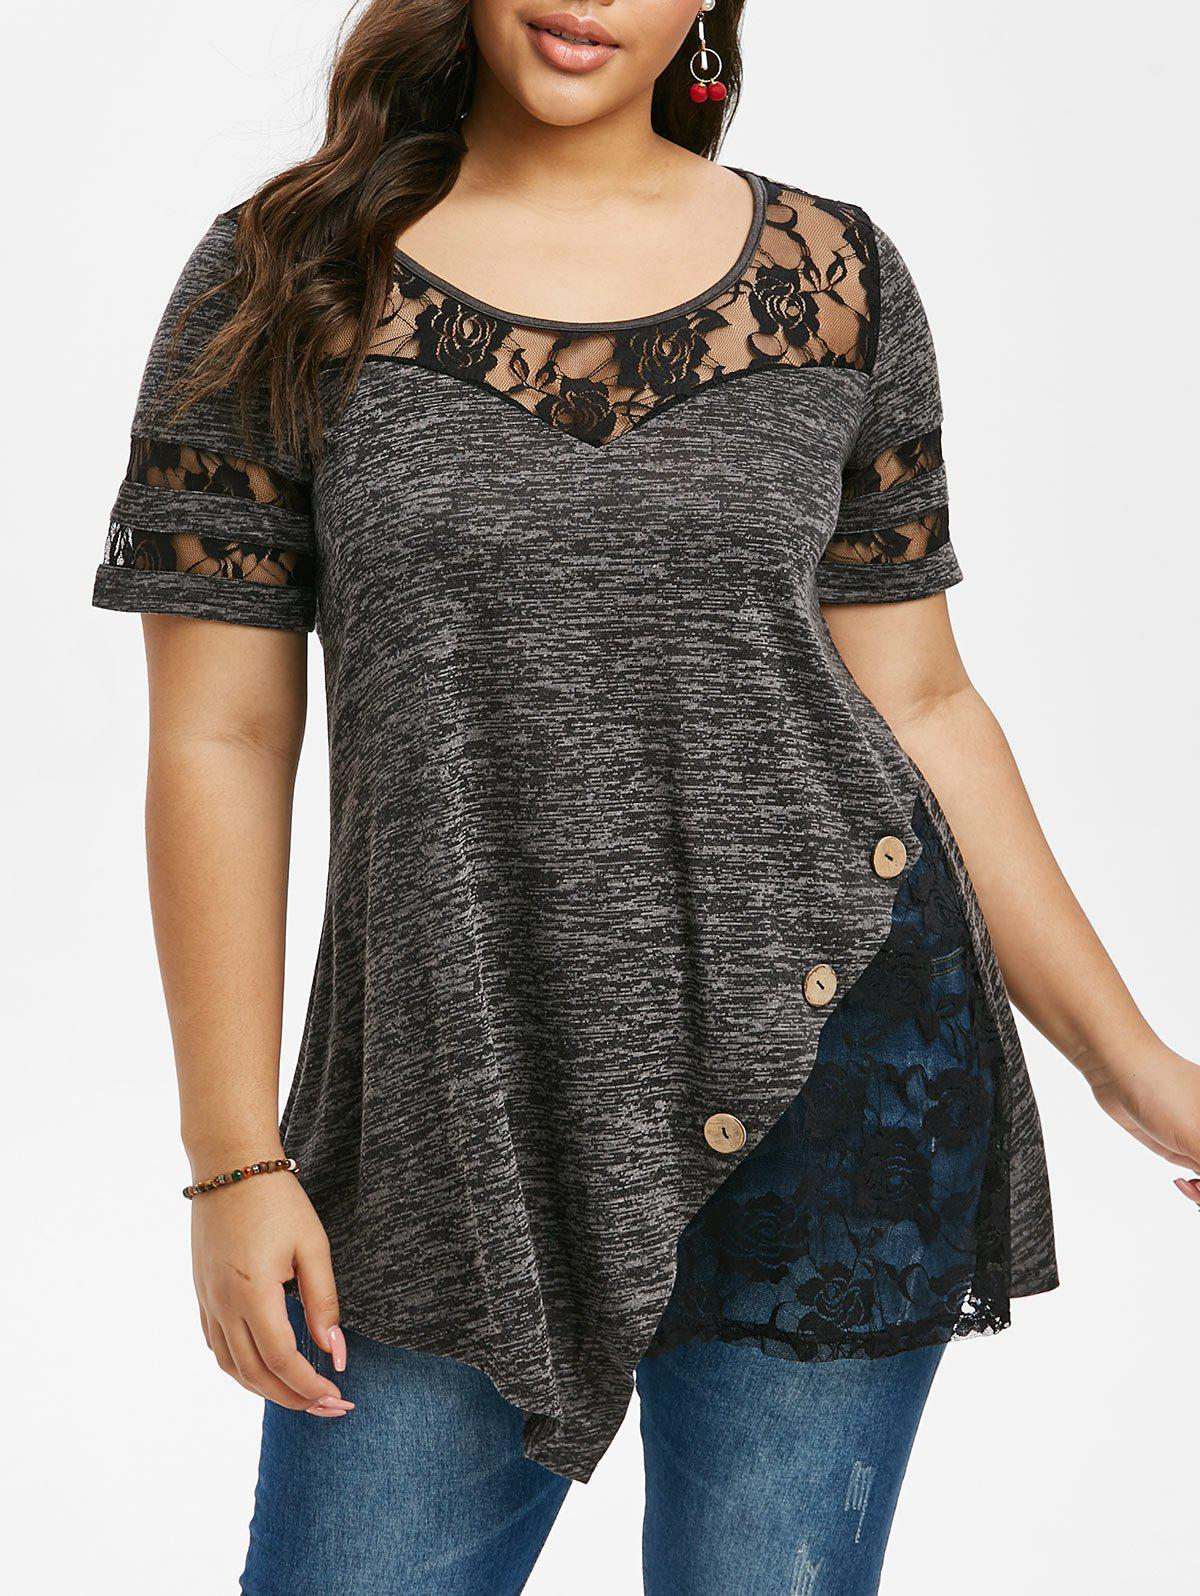 Plus Size Lace Insert Space Dye T Shirt - DARK SLATE GREY 4X